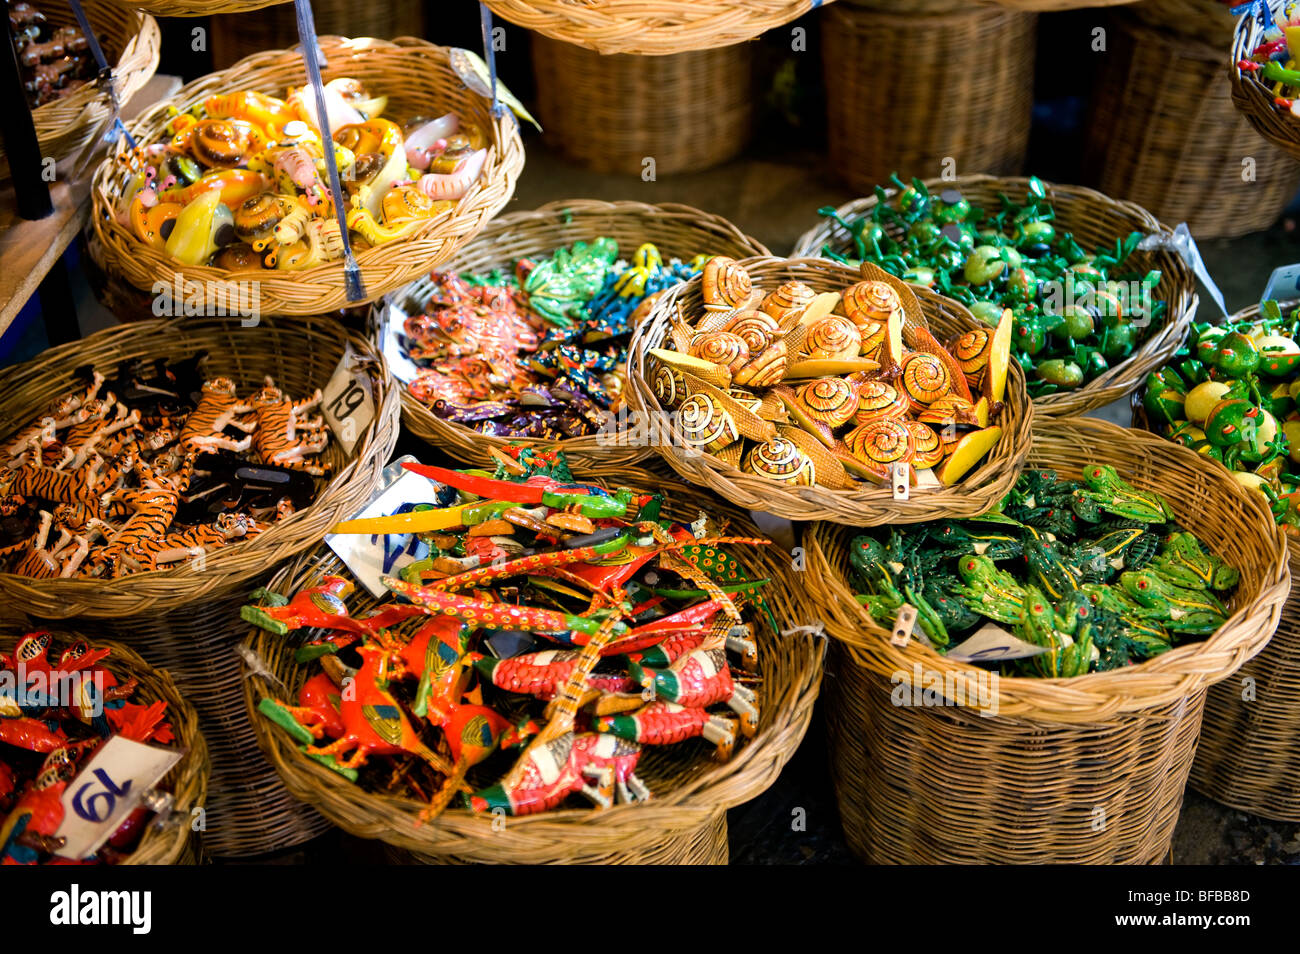 Variety of magnet animal wood in the basket selling at chatuchak weekend market,Bangkok,Thailand. - Stock Image